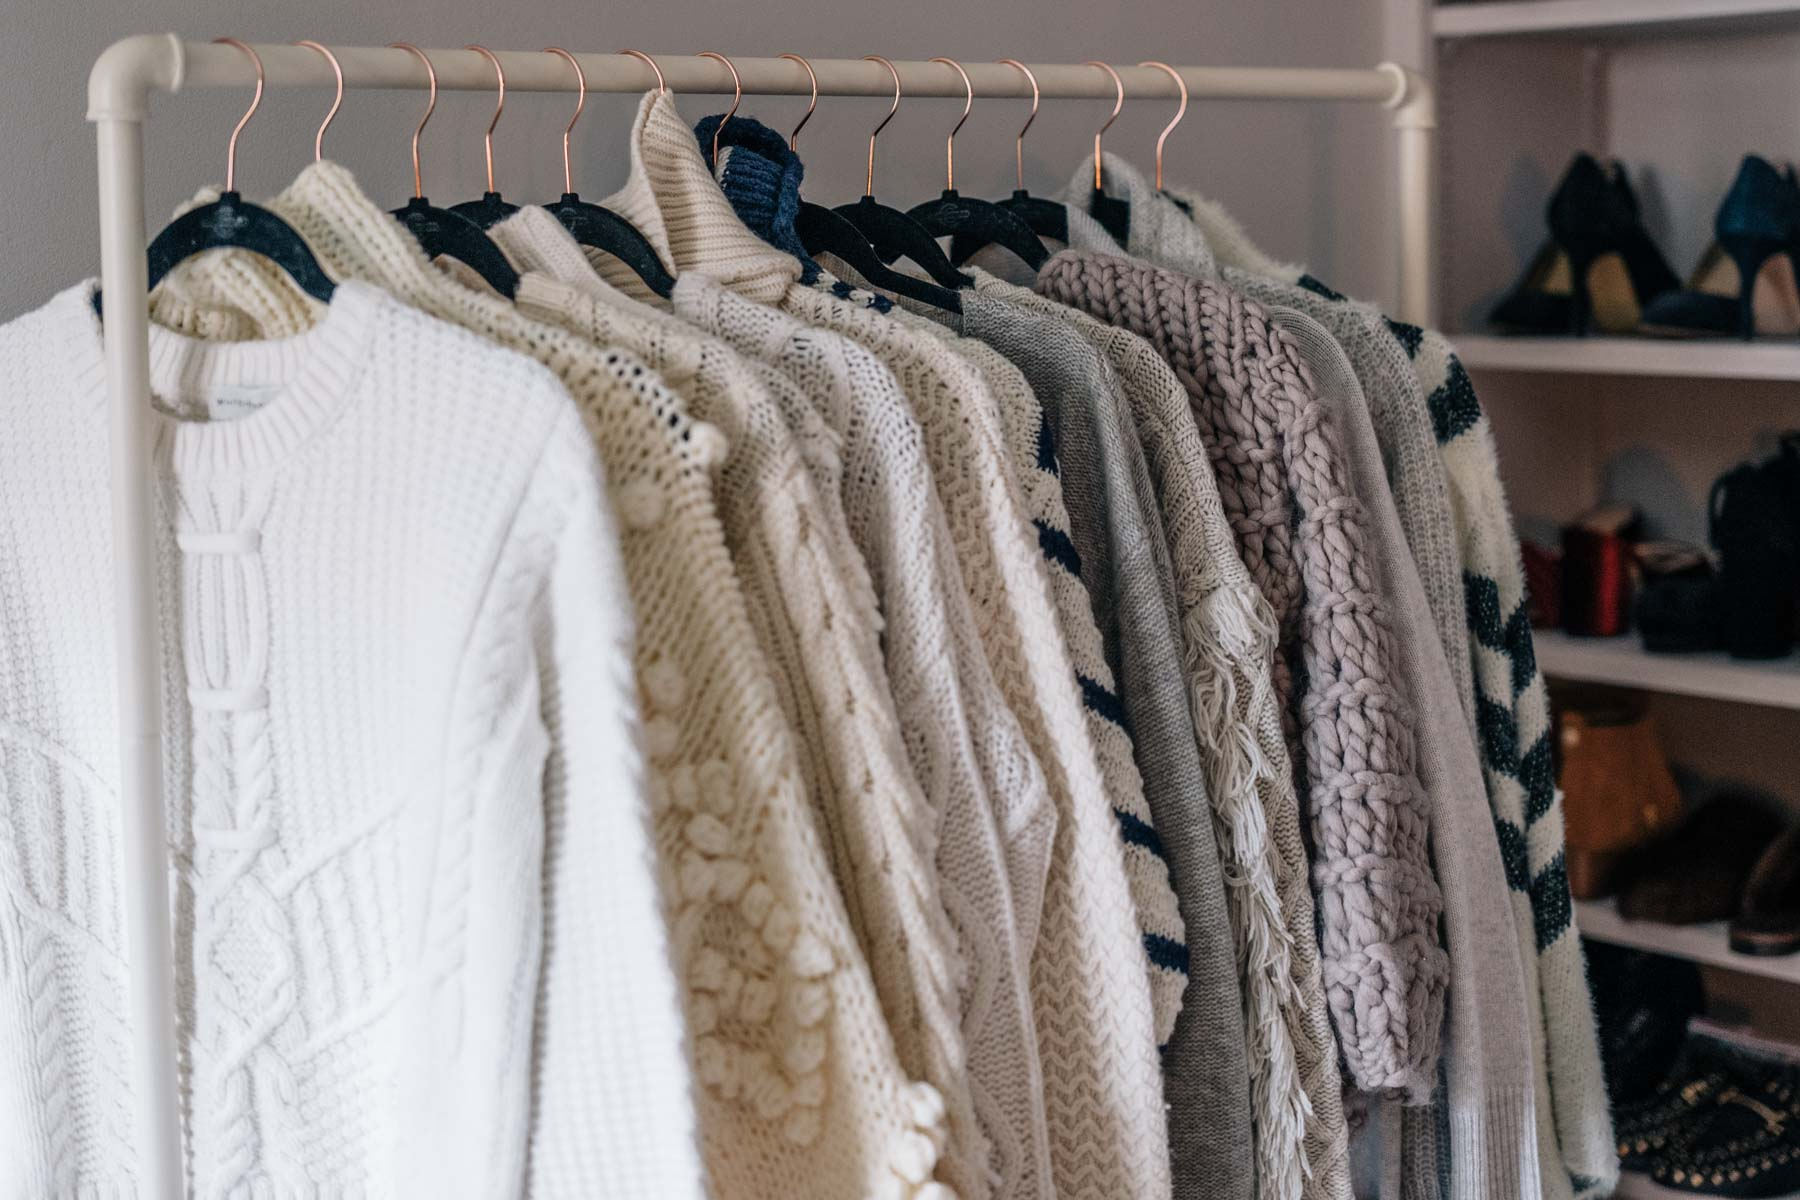 Jess Ann Kirby shares the neutral sweaters in her collection and how to care for them